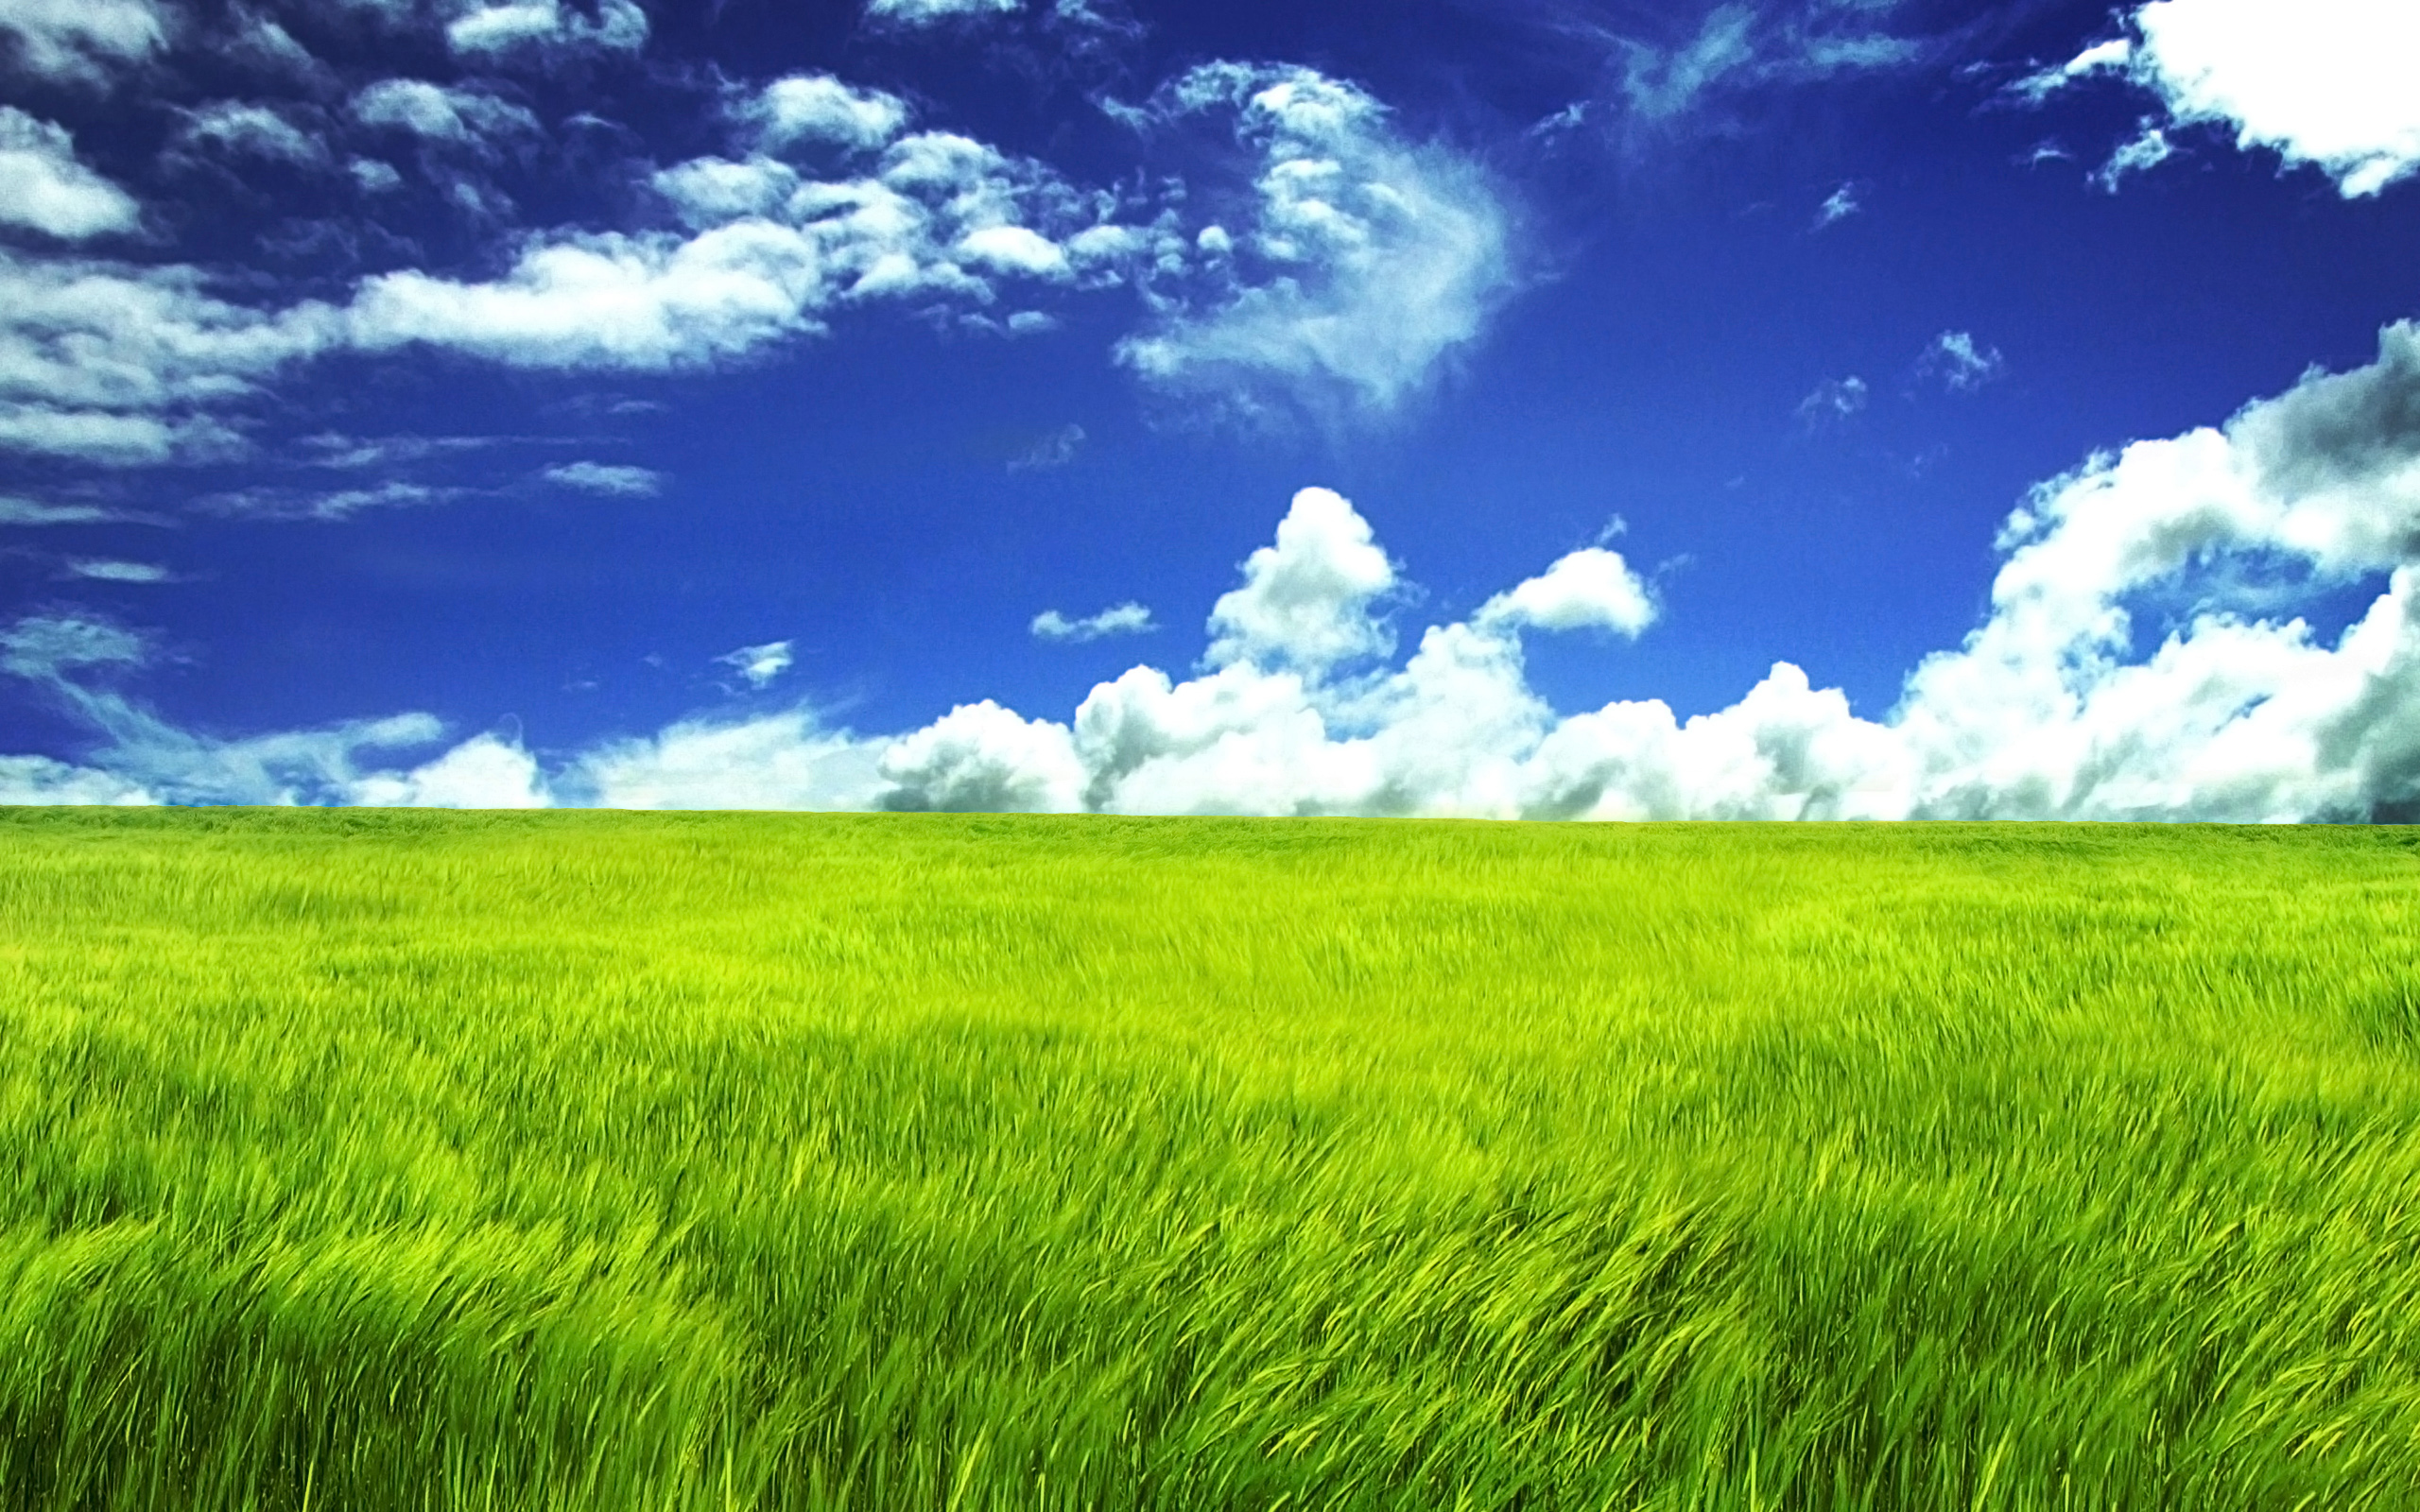 Blue-Sky-and-Green-Field-2560x1600-wide-wallpapers.net